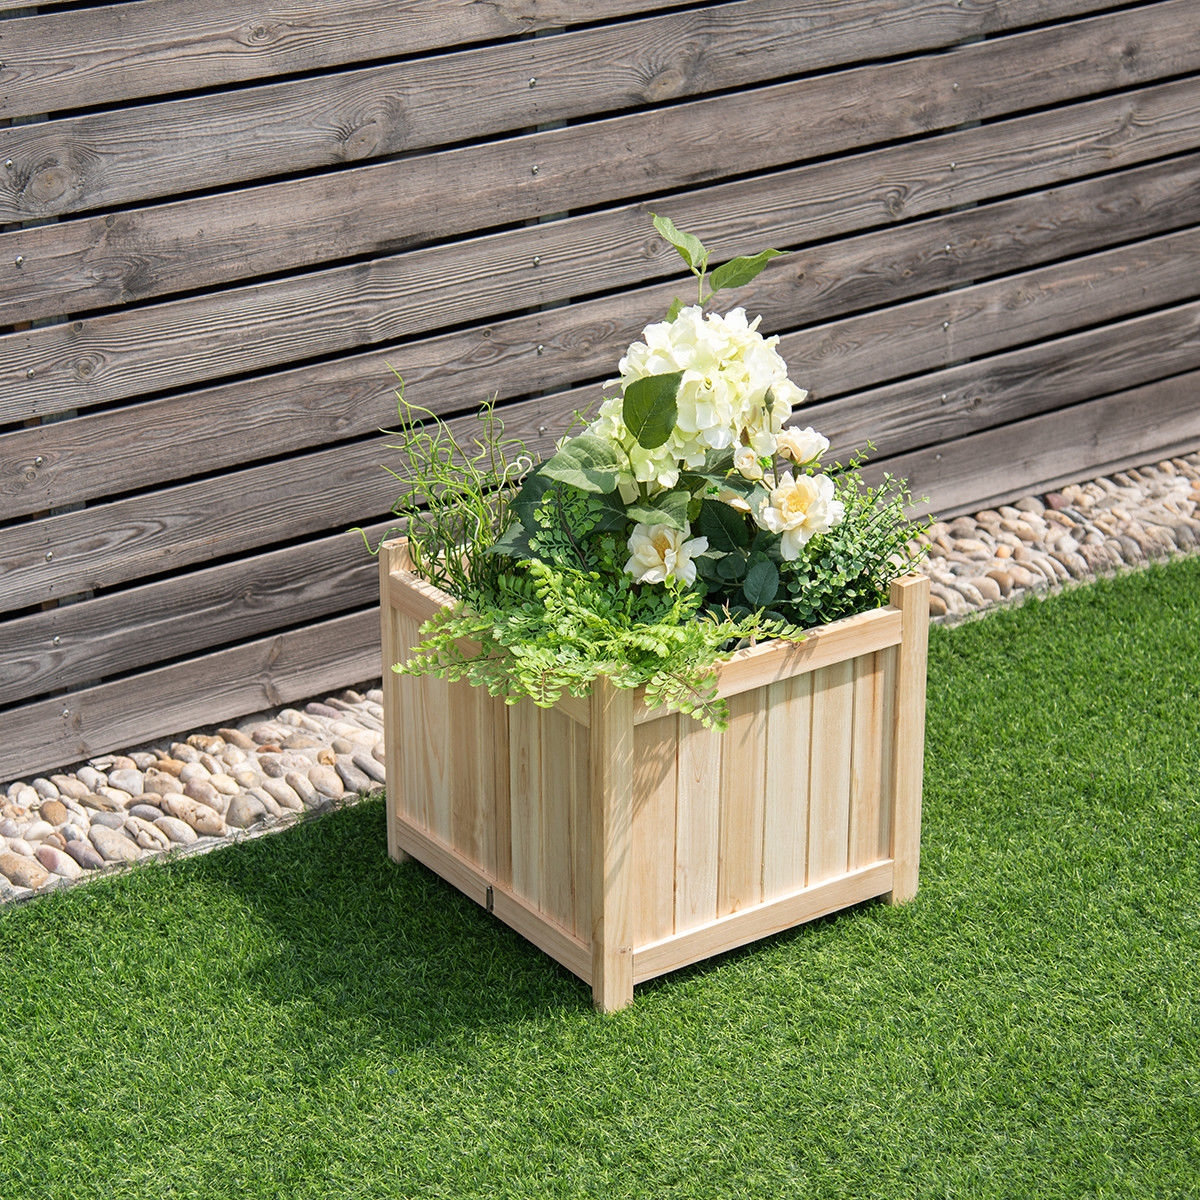 Image of Patio Lawn Garden Square Wood Flower Planter Box